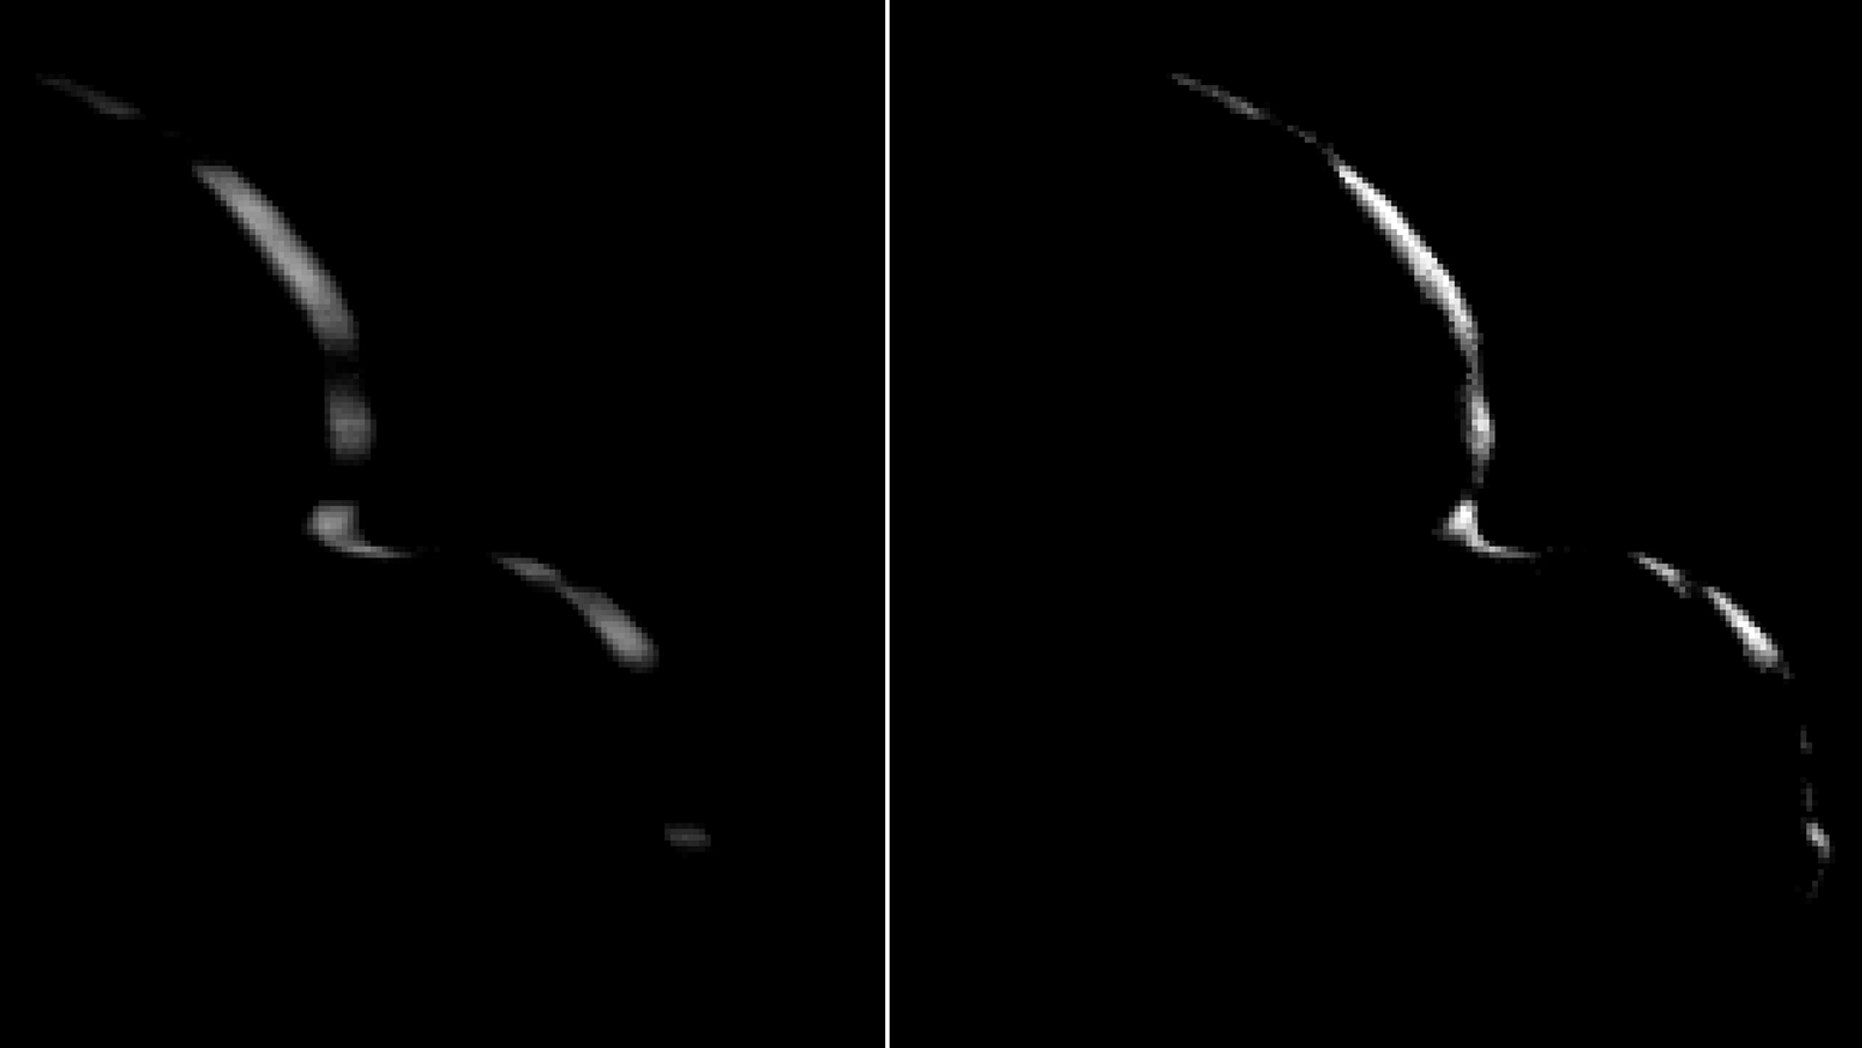 """New Horizons took this image of Ultima Thule on Jan. 1, 2019, when the NASA spacecraft was 5,494 miles (8,862 kilometers) beyond it. The image to the left is an """"average"""" of ten images taken by the Long Range Reconnaissance Imager; the crescent is blurred in the raw frames because a relatively long exposure time was used during this rapid scan to boost the camera's signal level. Mission scientists have been able to process the image, removing the motion blur to produce a sharper, brighter view of Ultima Thule's thin crescent. (Credit: NASA/Johns Hopkins Applied Physics Laboratory/Southwest Research Institute/National Optical Astronomy Observatory)"""